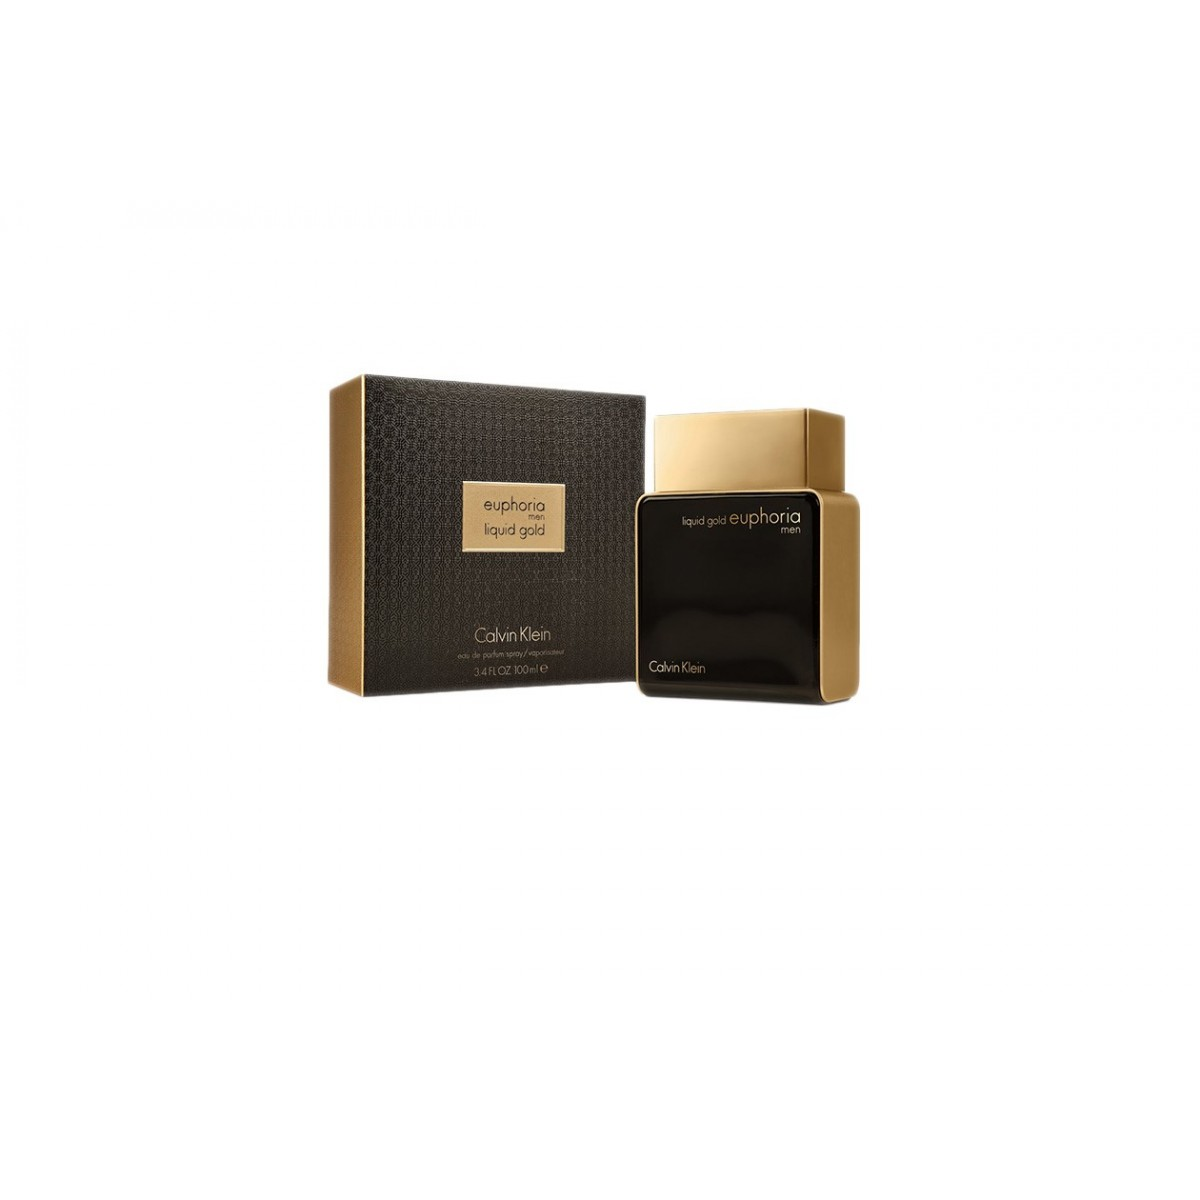 35cf36abec Calvin Klein Ck Euphoria Liquid Gold Edp Men 100ml. Be the first to review  this product